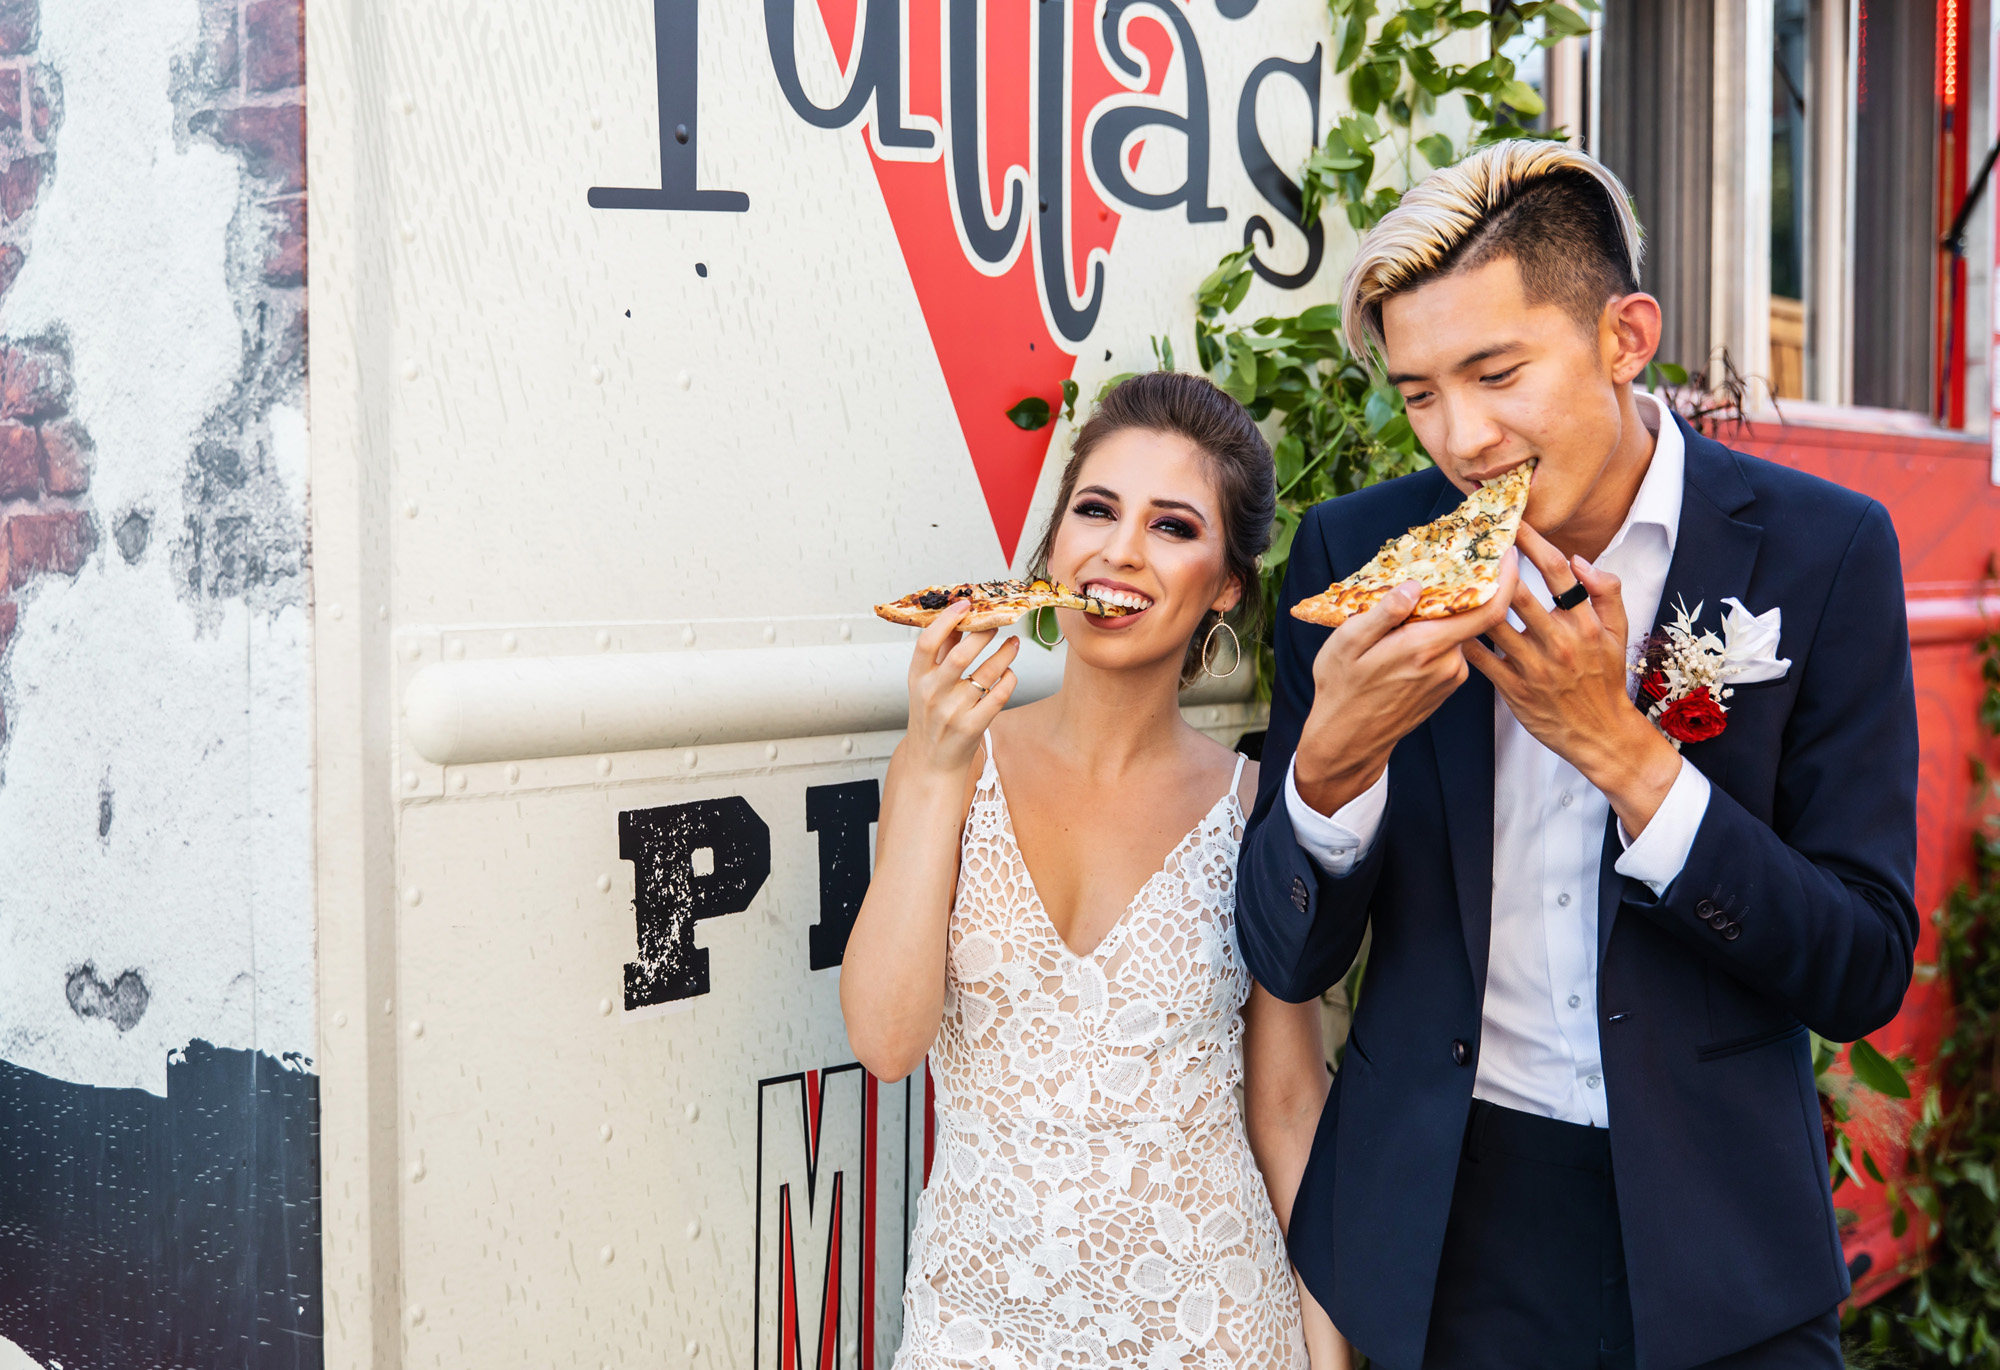 Tutta's Pizza Wedding